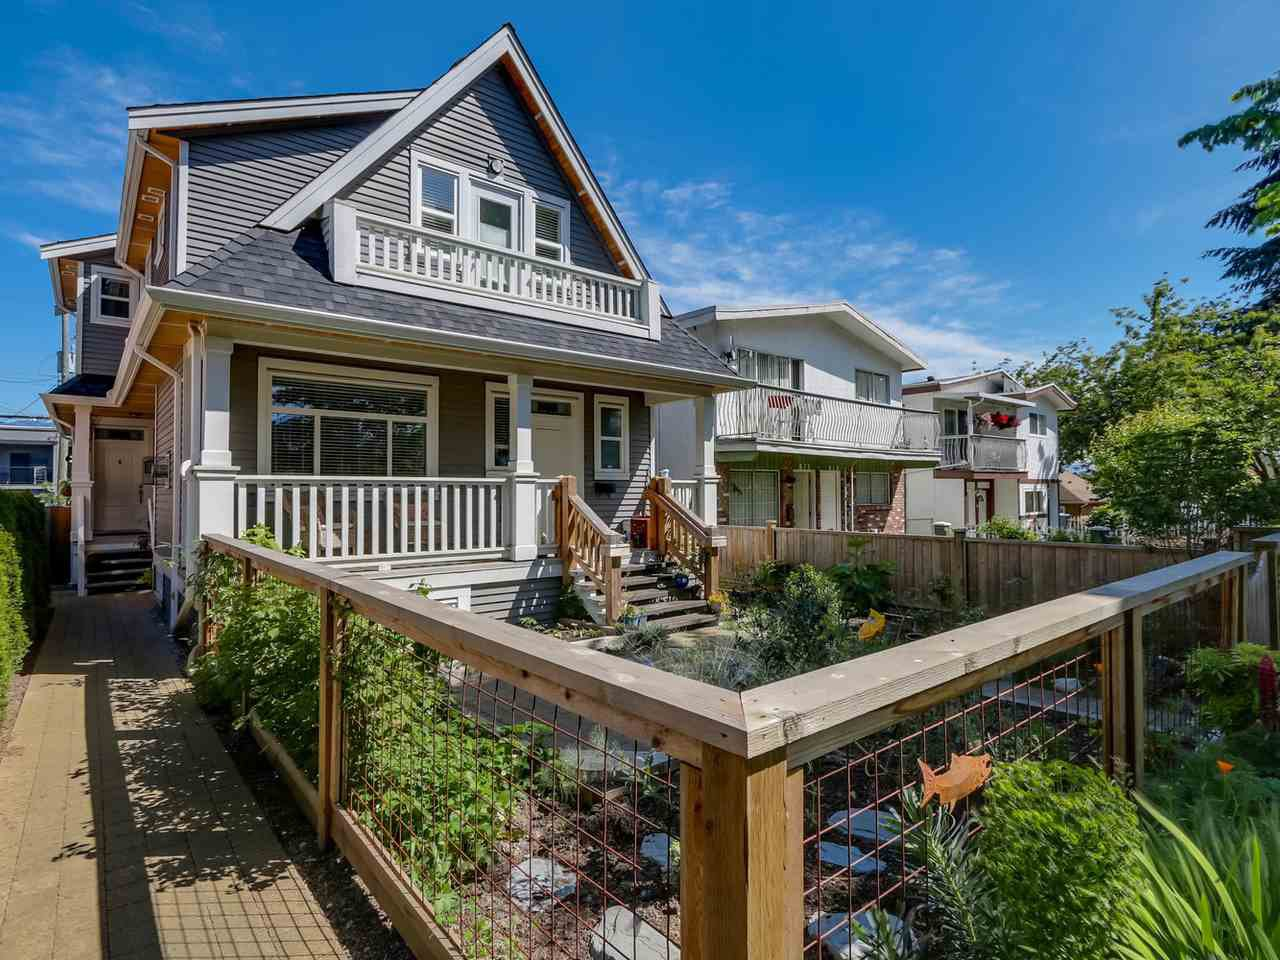 Main Photo: 865 E 10TH Avenue in Vancouver: Mount Pleasant VE House 1/2 Duplex for sale (Vancouver East)  : MLS®# R2068935